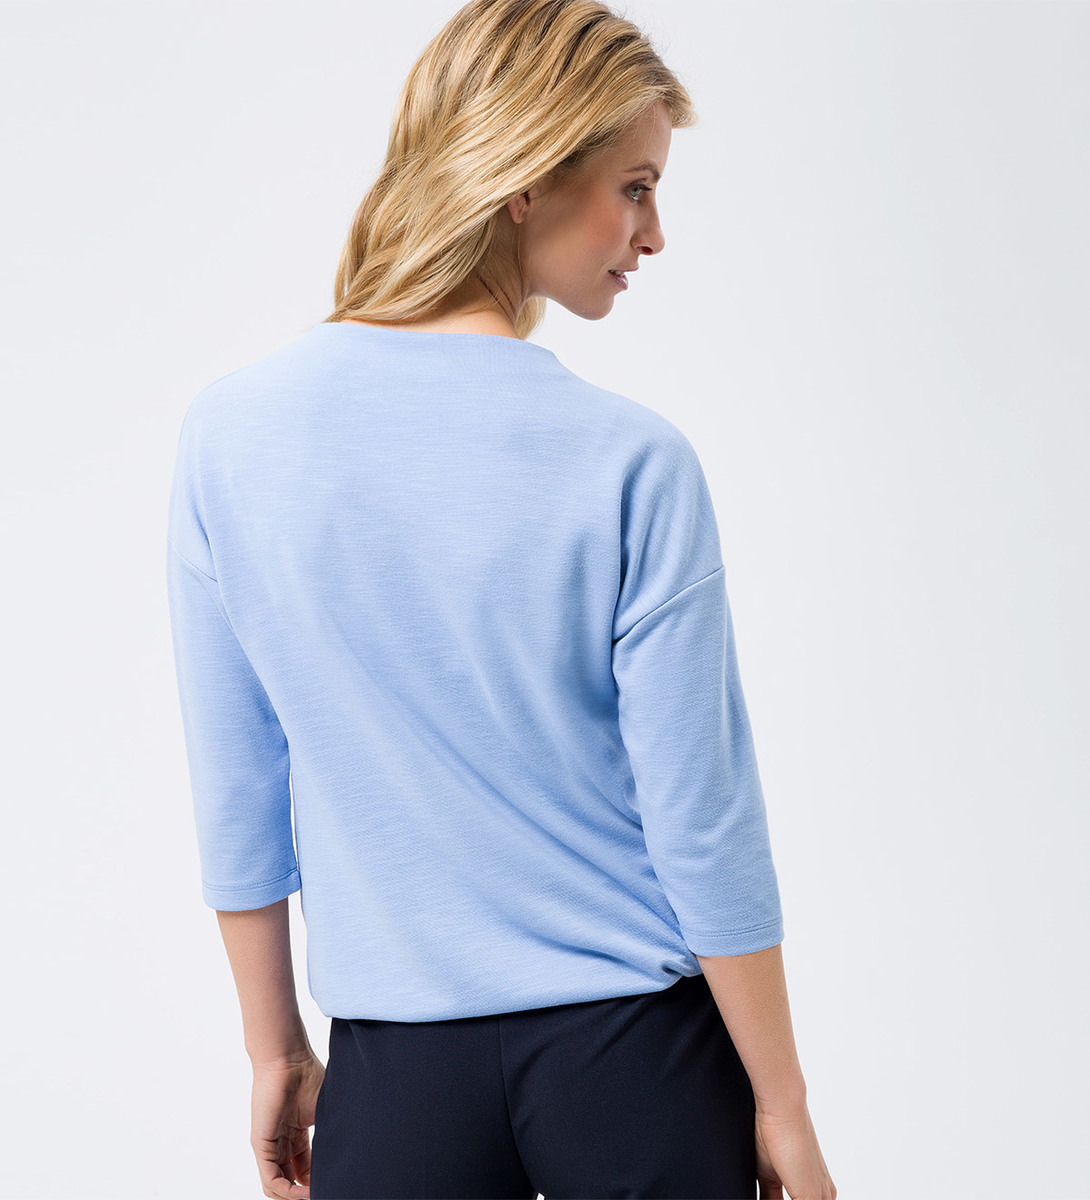 Sweatshirt mit 3/4-Ärmeln in blue